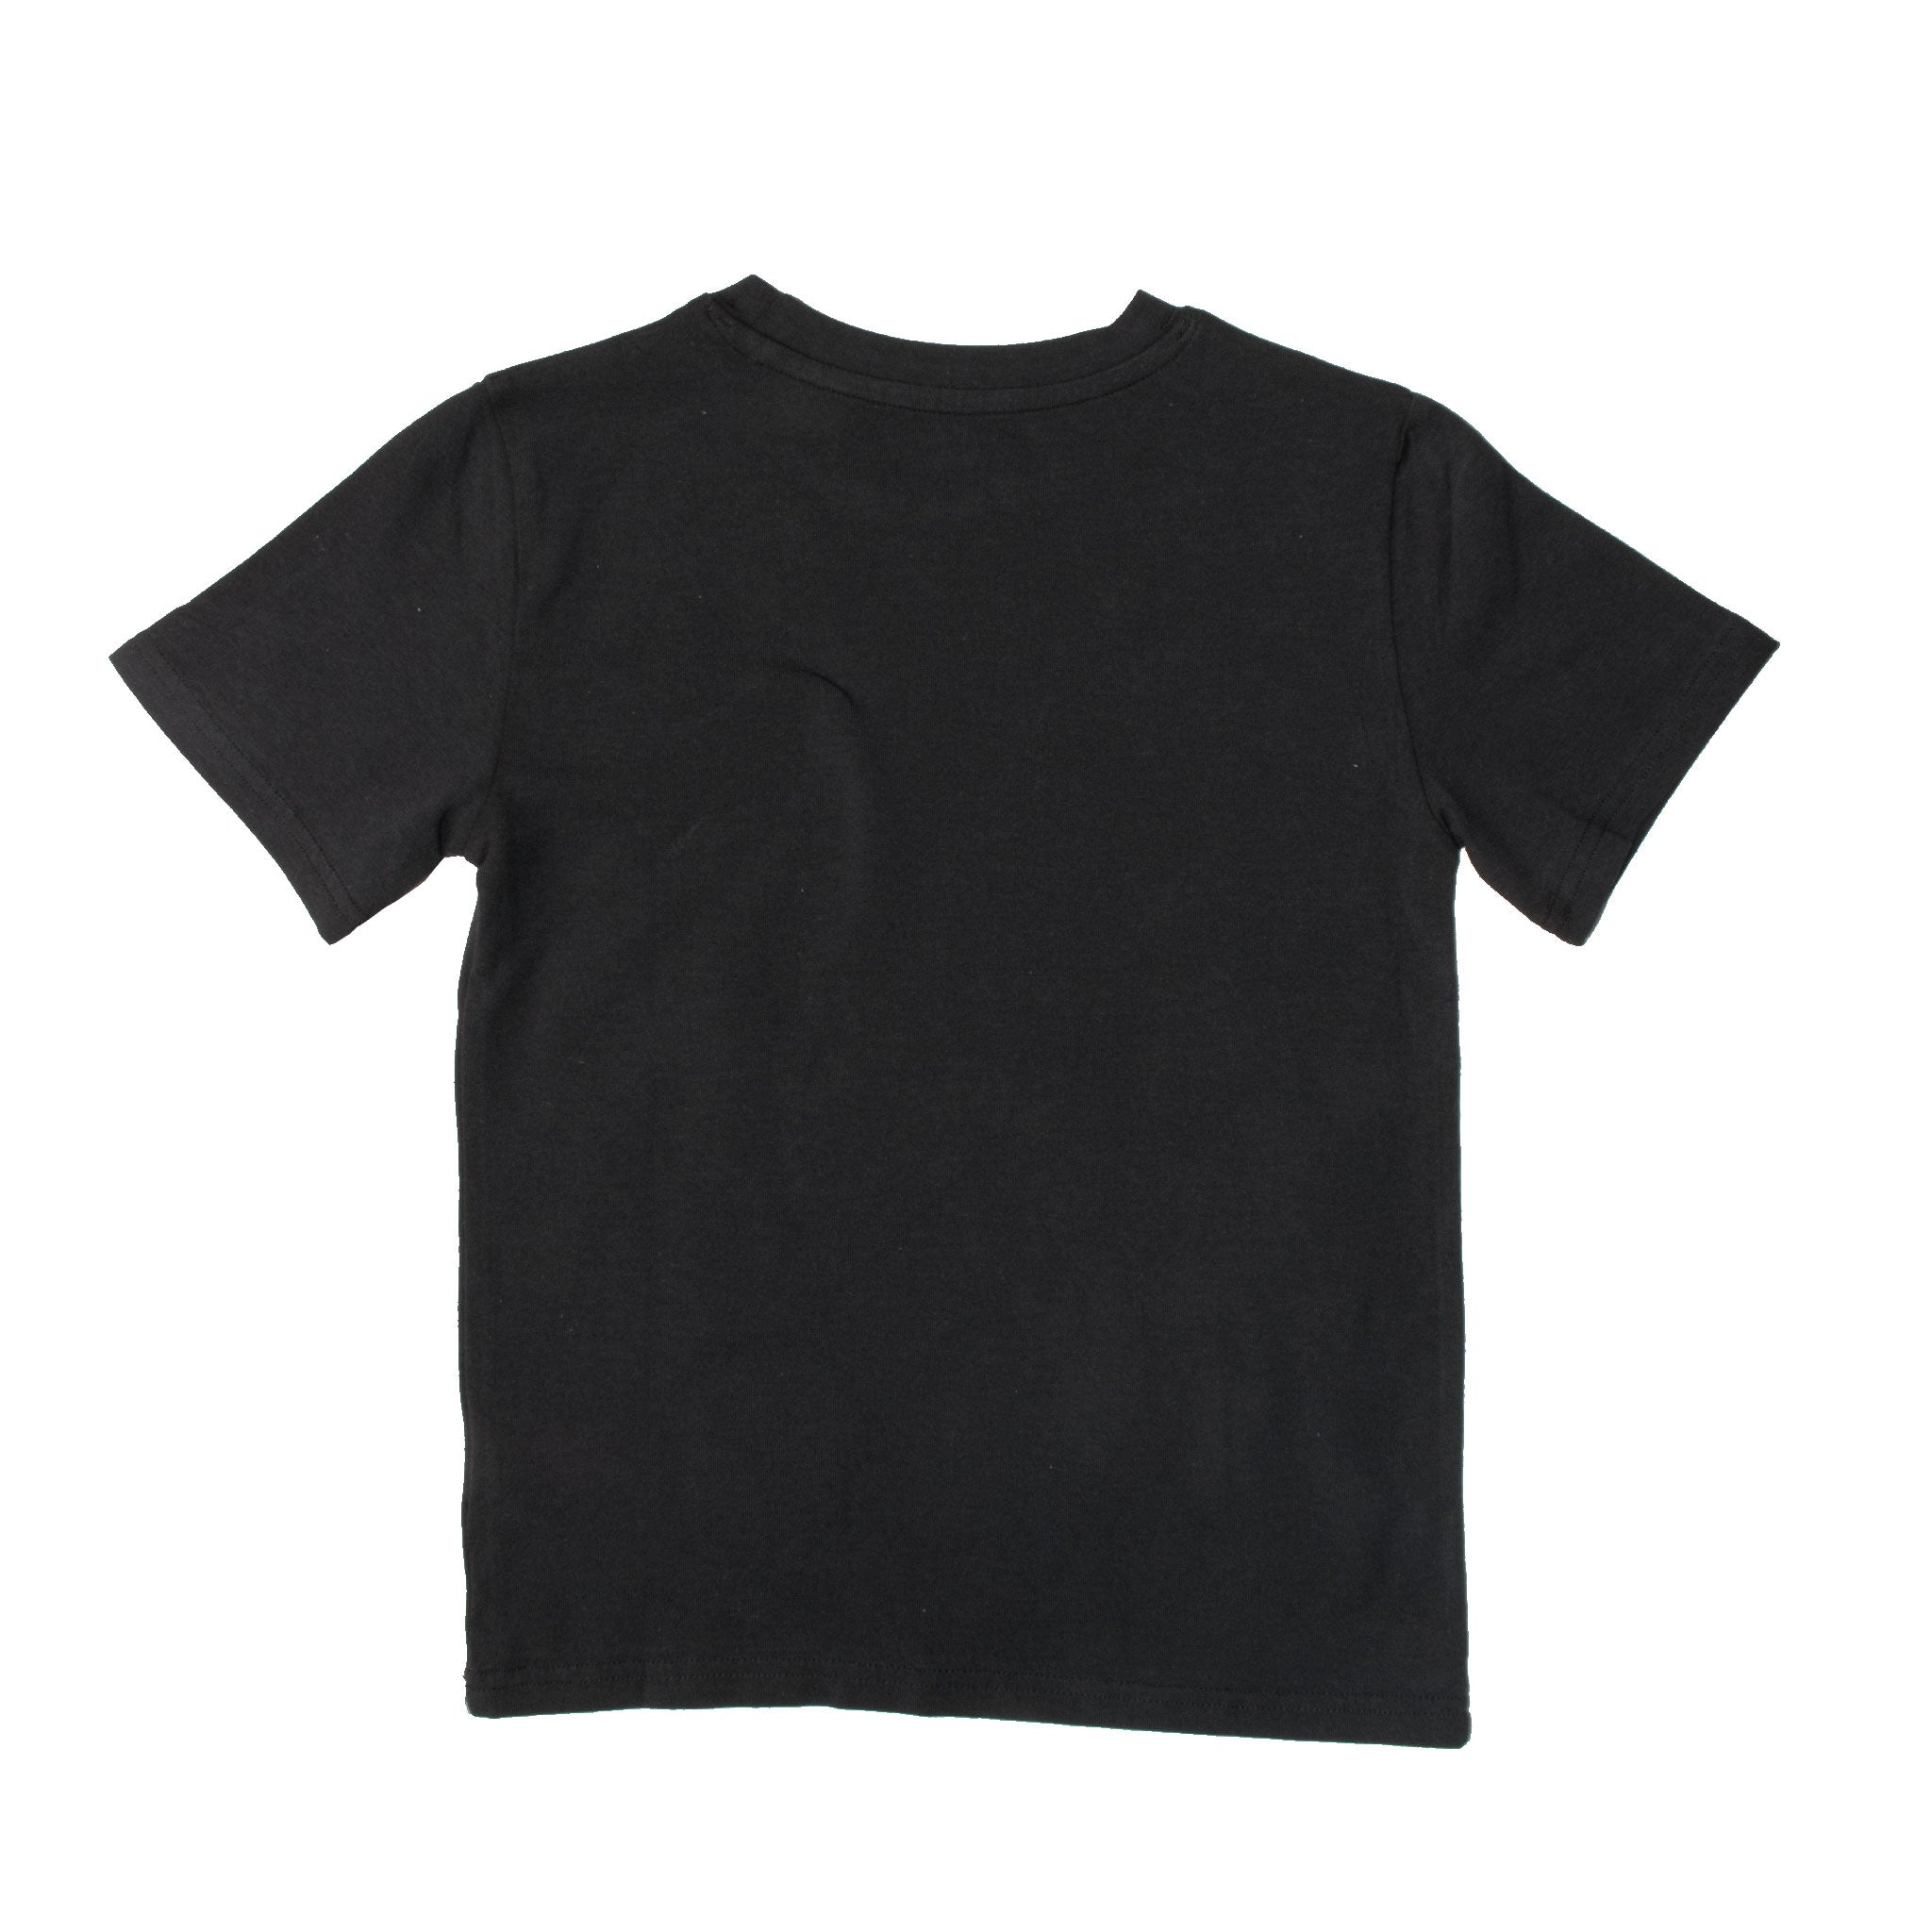 BOY'S S/S GRAPHIC TEE-BLACK-SSSS20KB-1113 - Export Mall